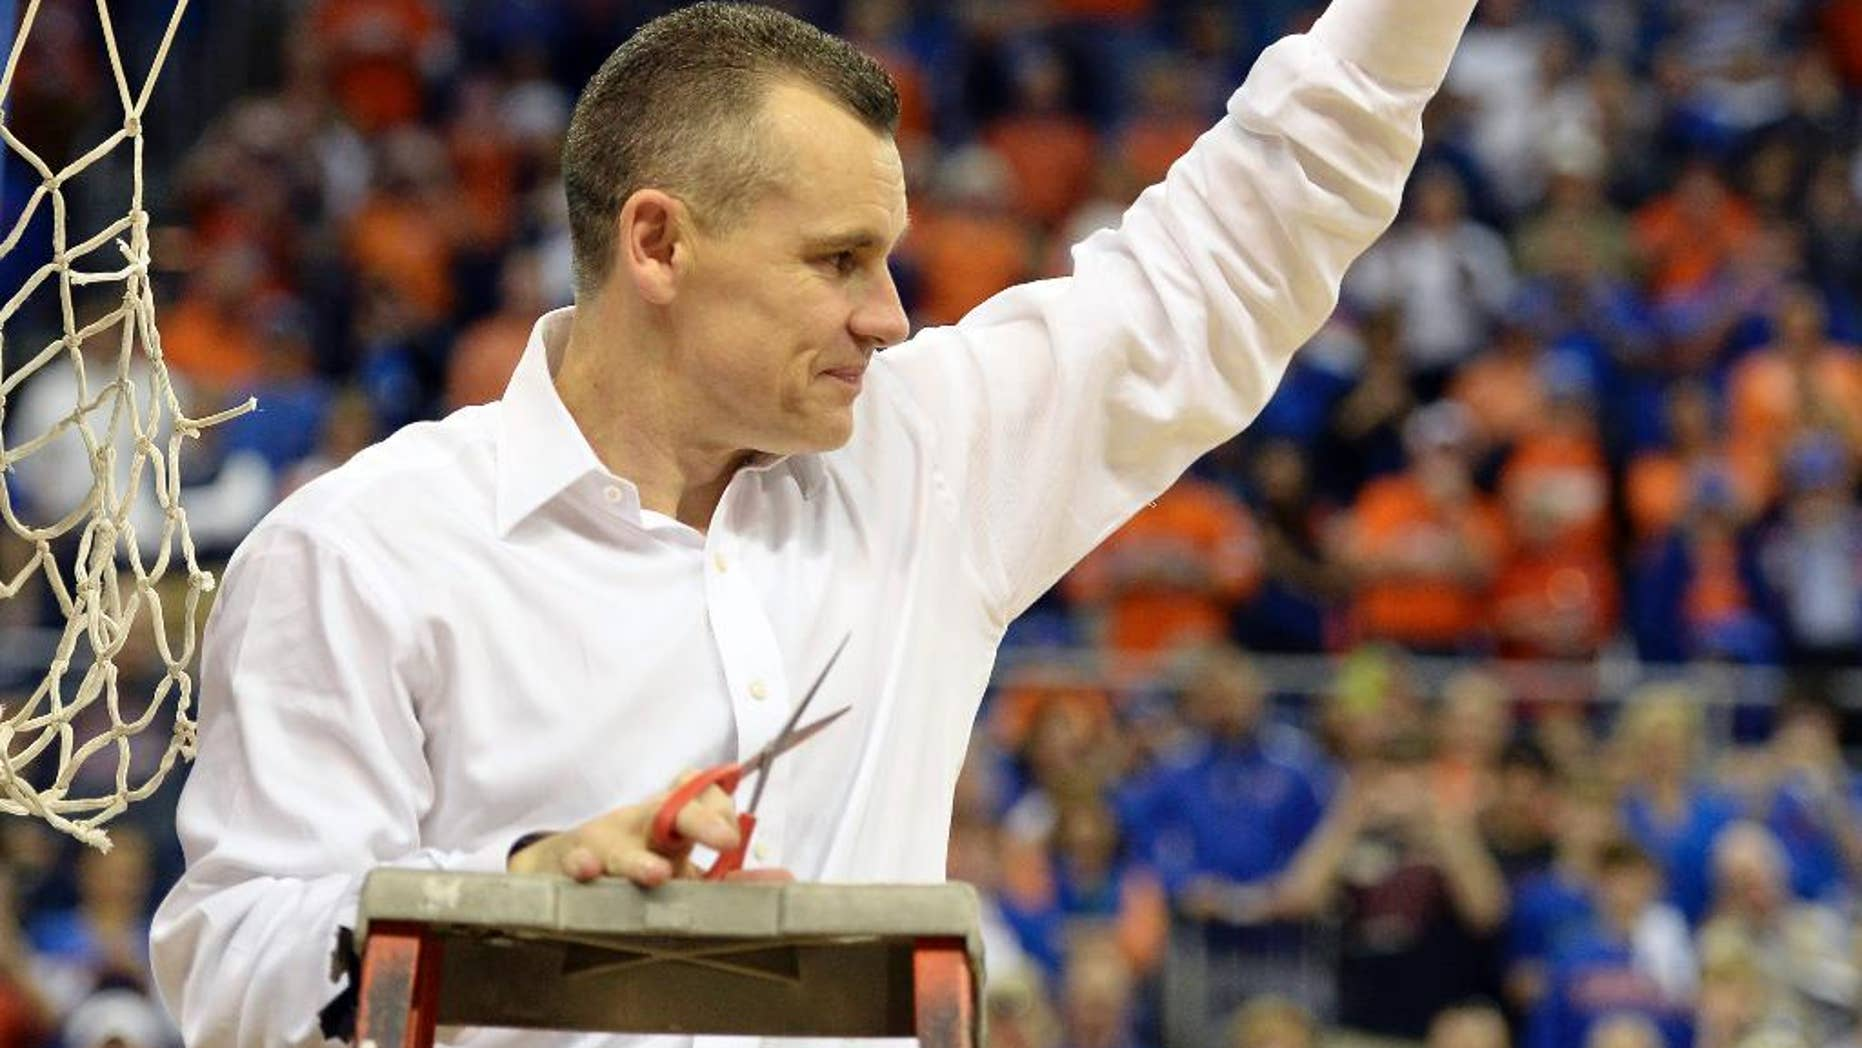 Florida coach Billy Donovan holds up a piece of the net after the Gators became the first team in Southeastern Conference history to go 18-0 in league pla, Saturday, March 8, 2014 in Gainesville, Fla. Florida defeated Kentucky 84-65 Saturday in an NCAA college basketball game. (AP Photo/Phil Sandlin)